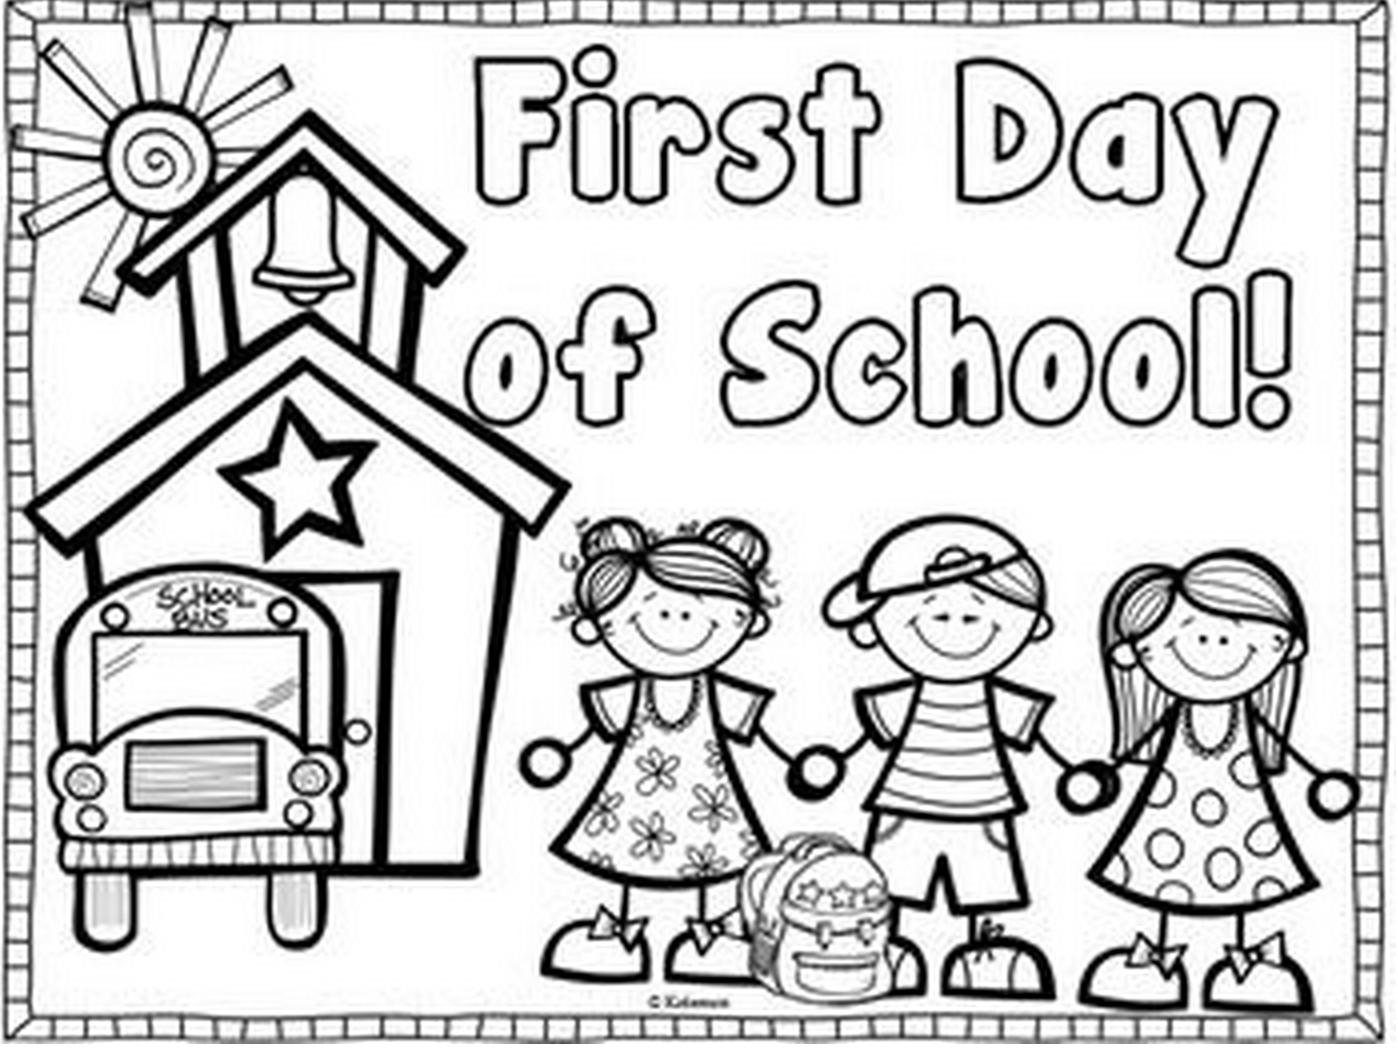 First Day Of School Coloring Pages For Kindergarten.